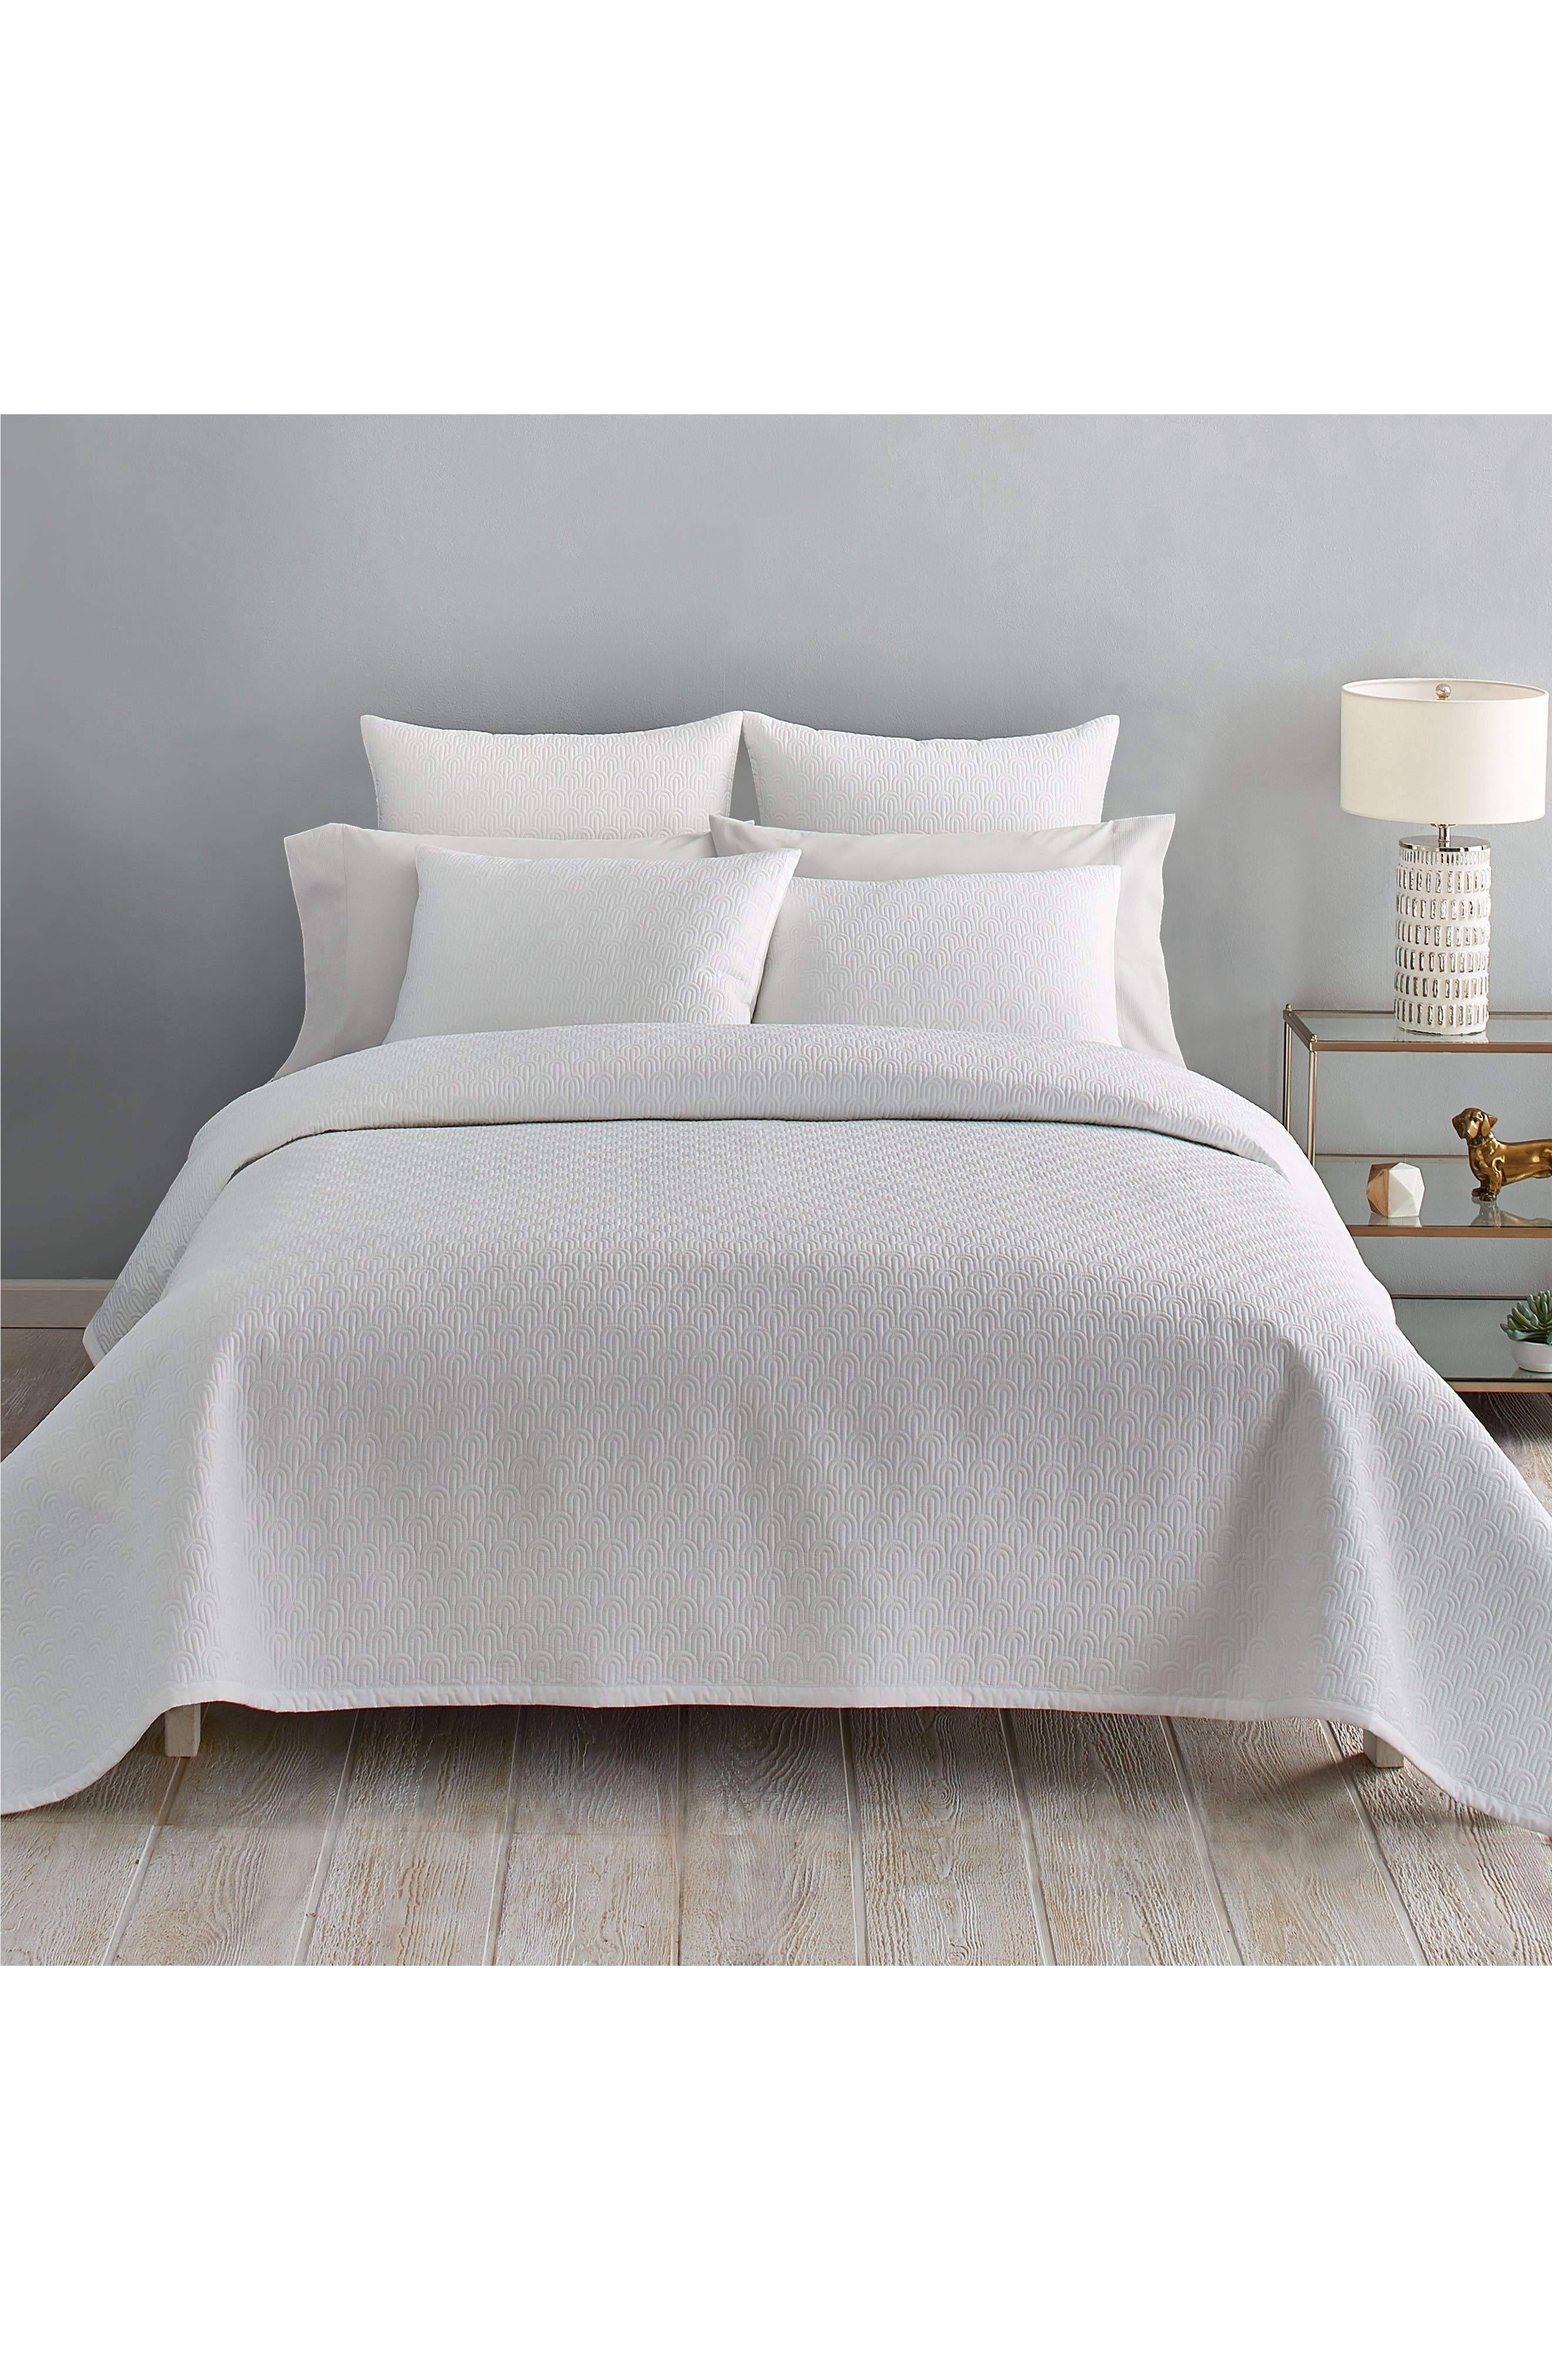 Quilted Coverlet,                         Main,                         color, White